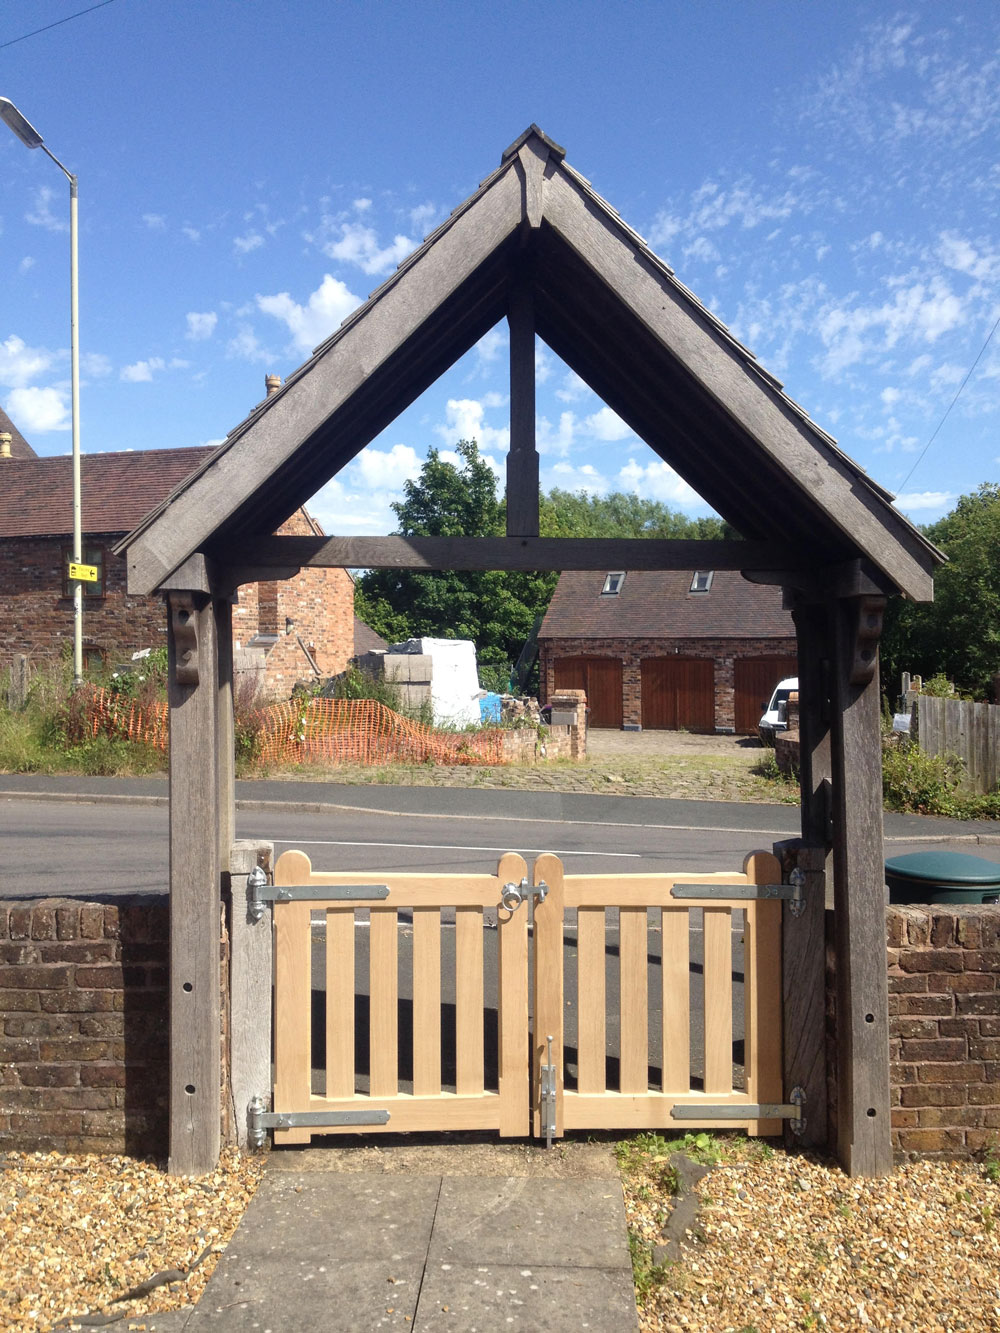 Gates-at-Little-Dawley-Memorial-1000